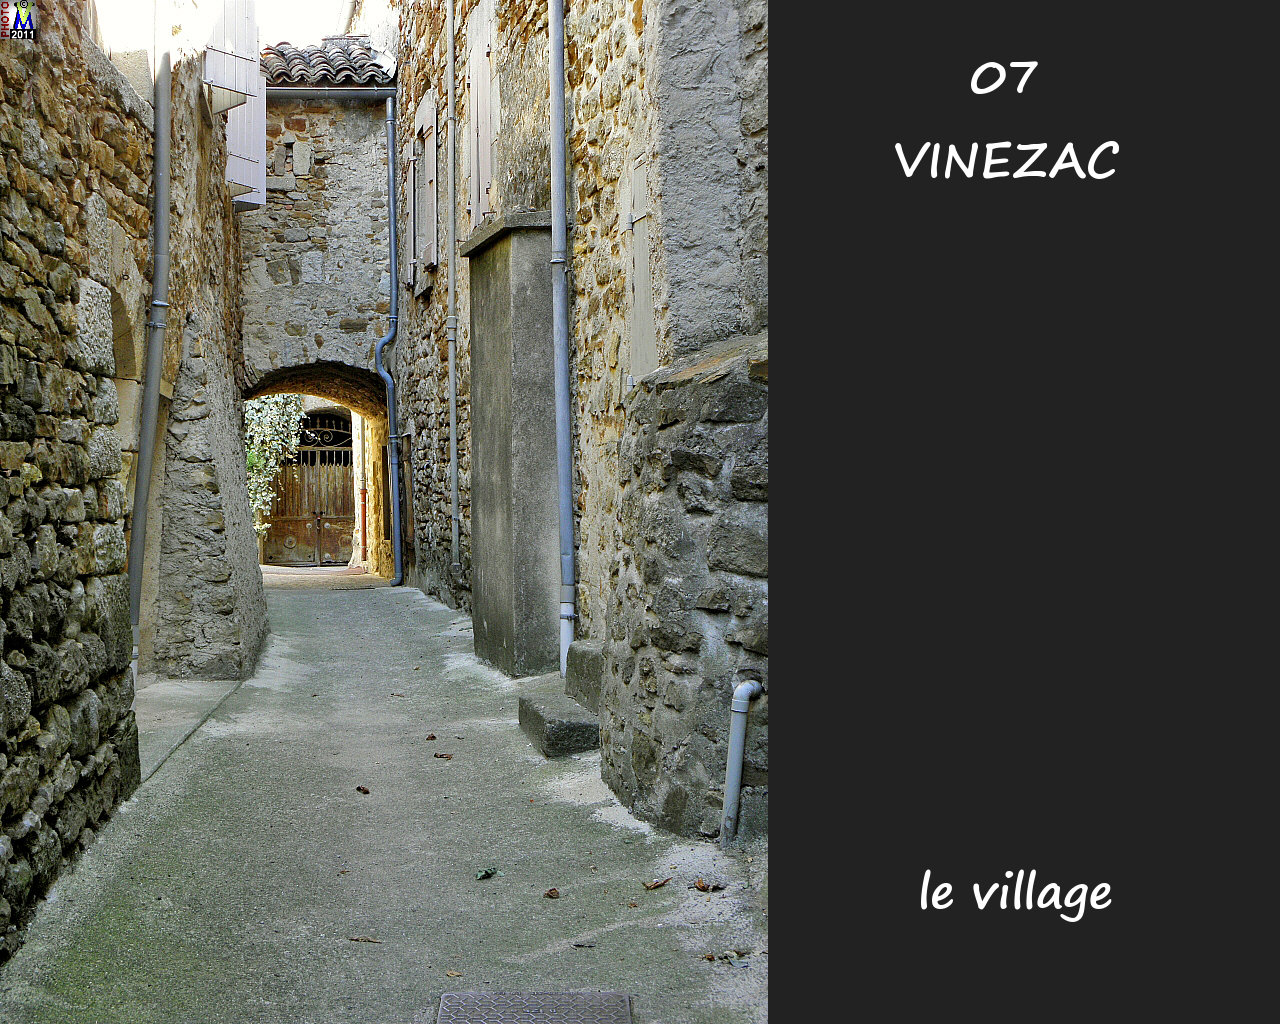 07VINEZAC_village_170.jpg